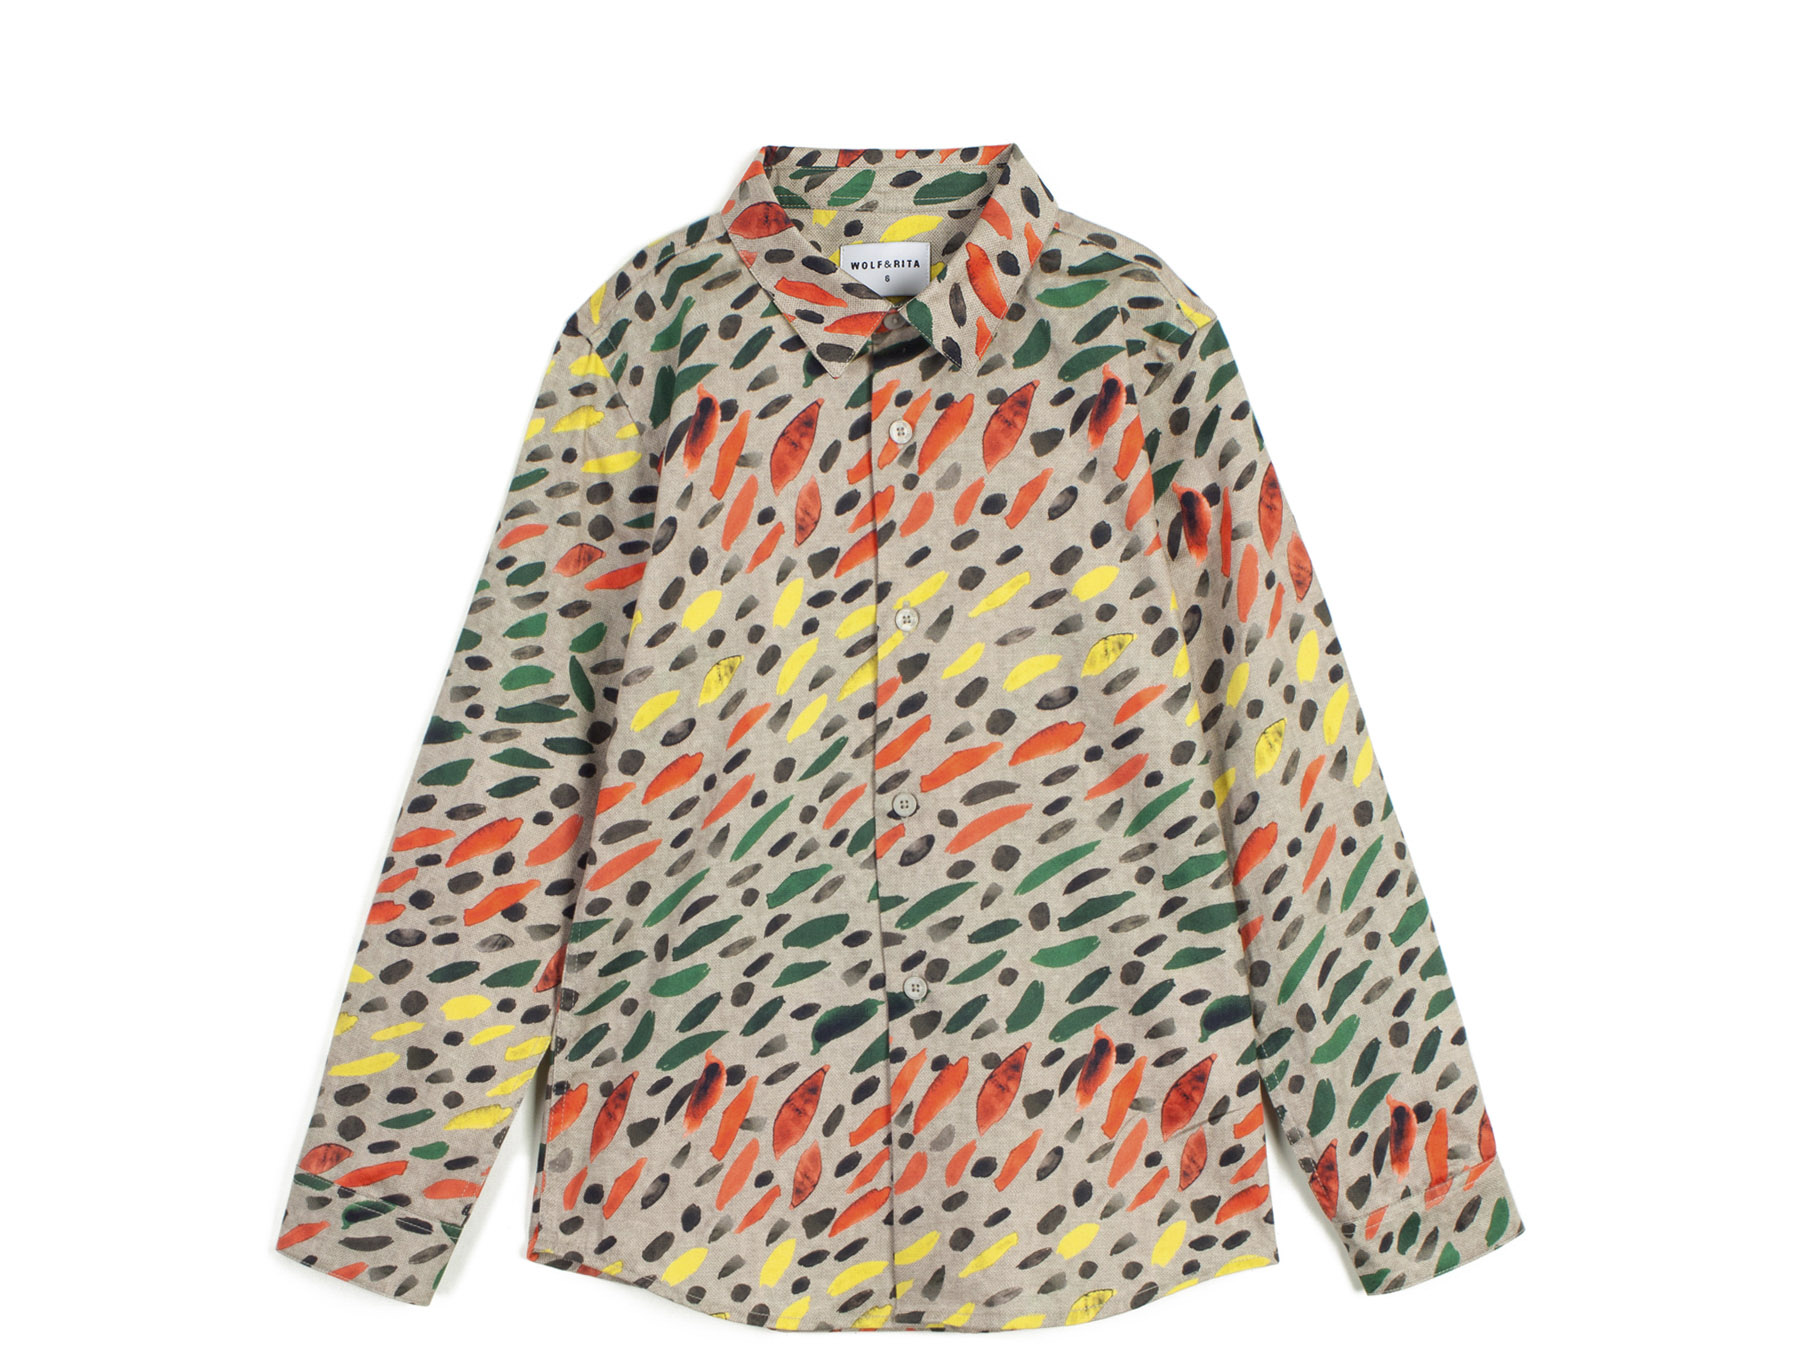 wolf & rita roberto winter grass shirt